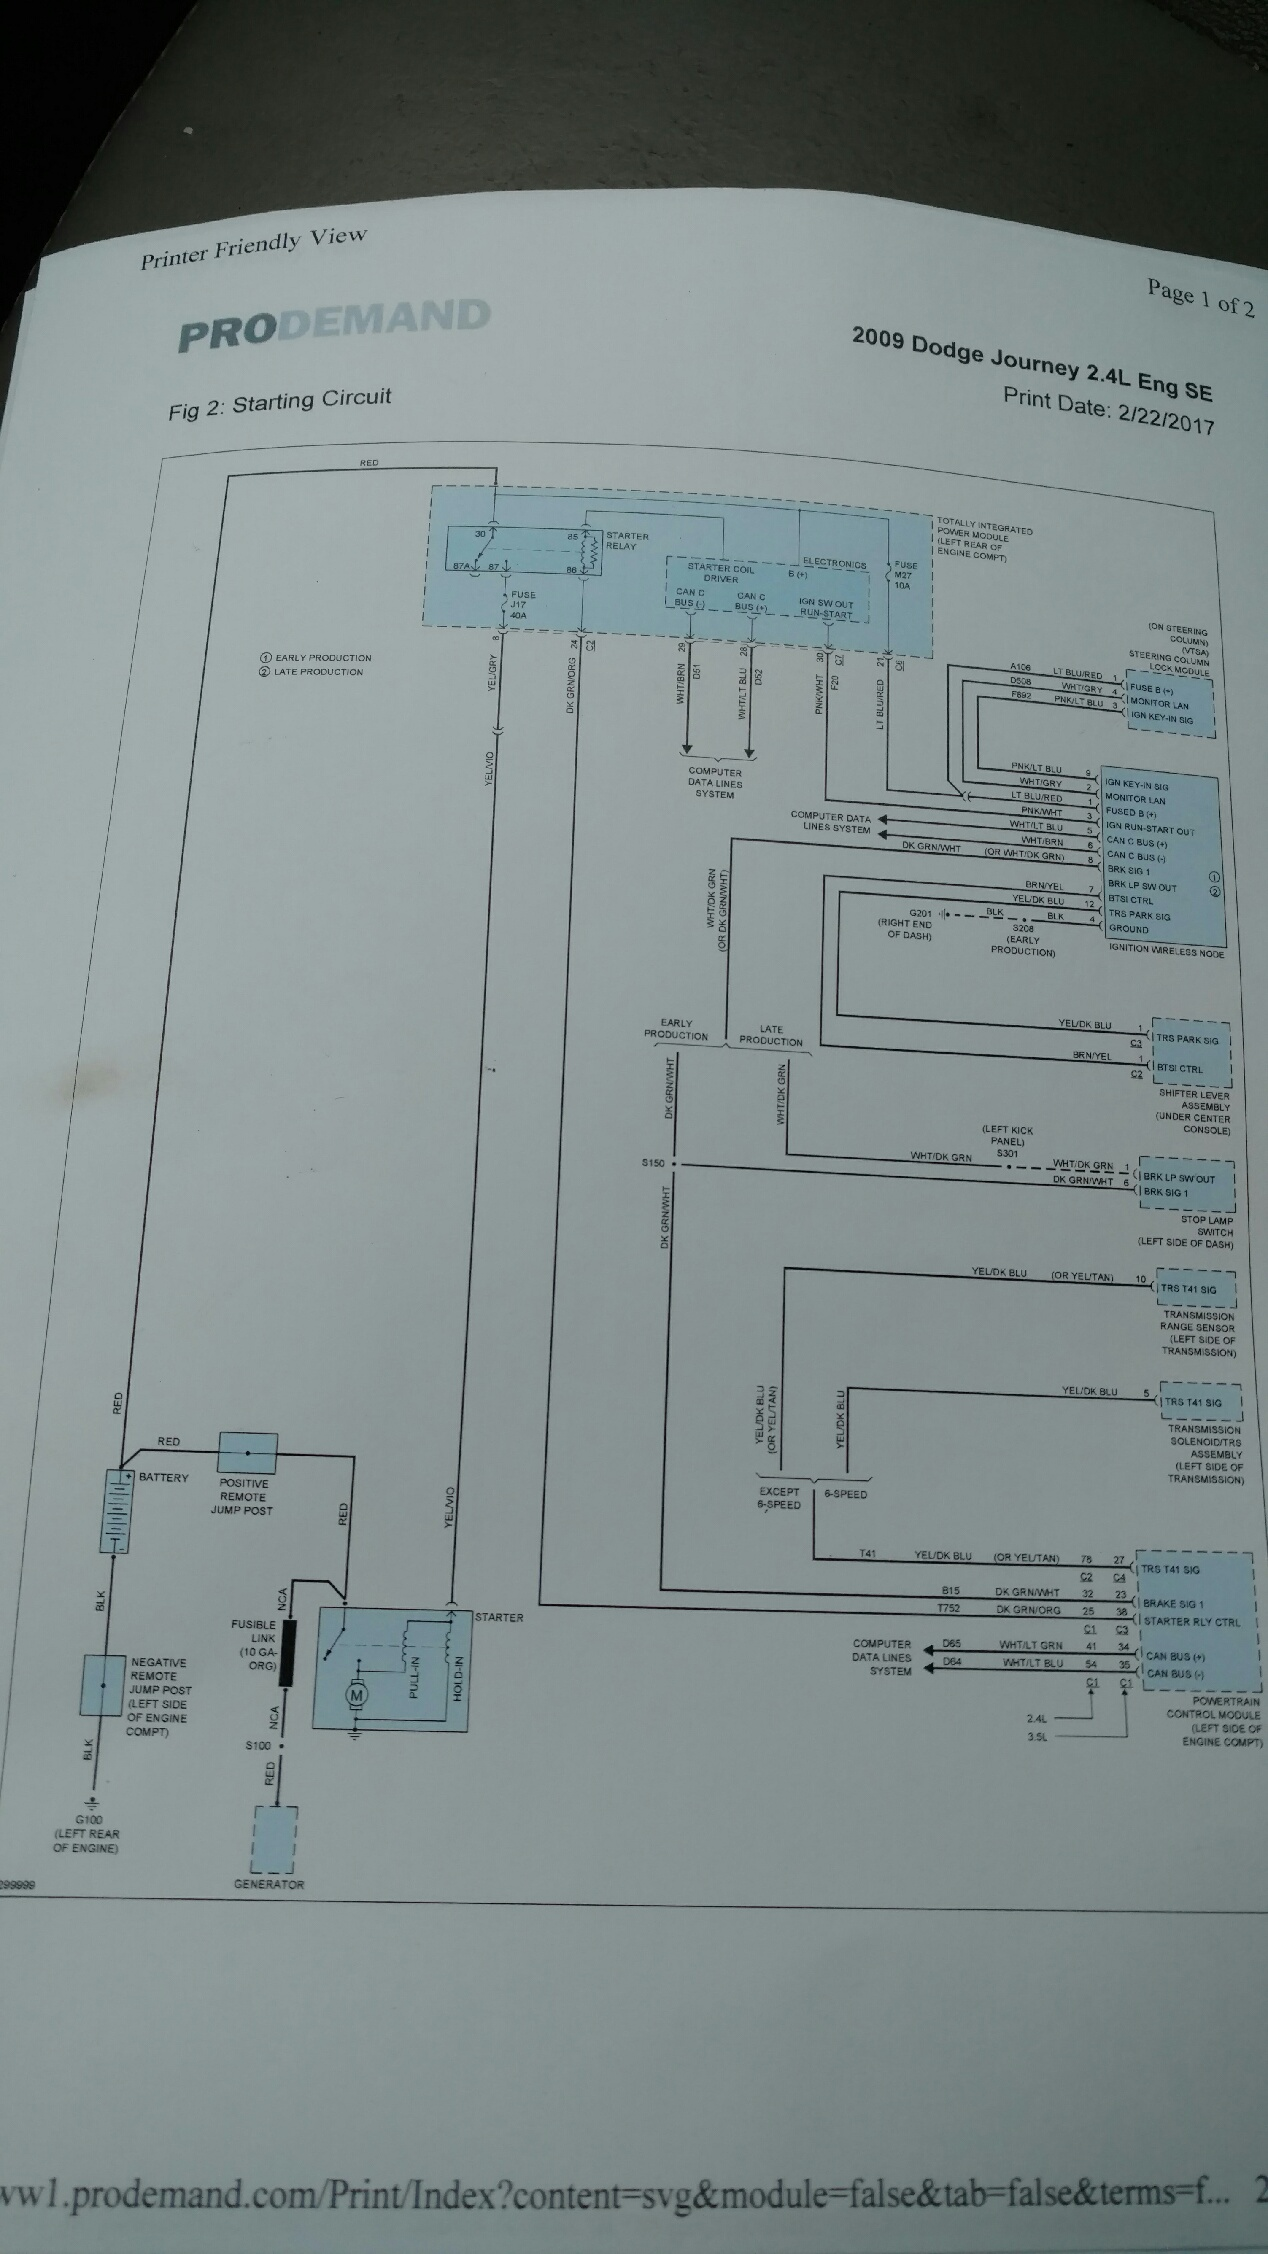 2009 Journey 2 4 Alternator Overheating Electrical, Battery Lucas  Alternator Diagram 2009 Dodge Journey Alternator Diagram